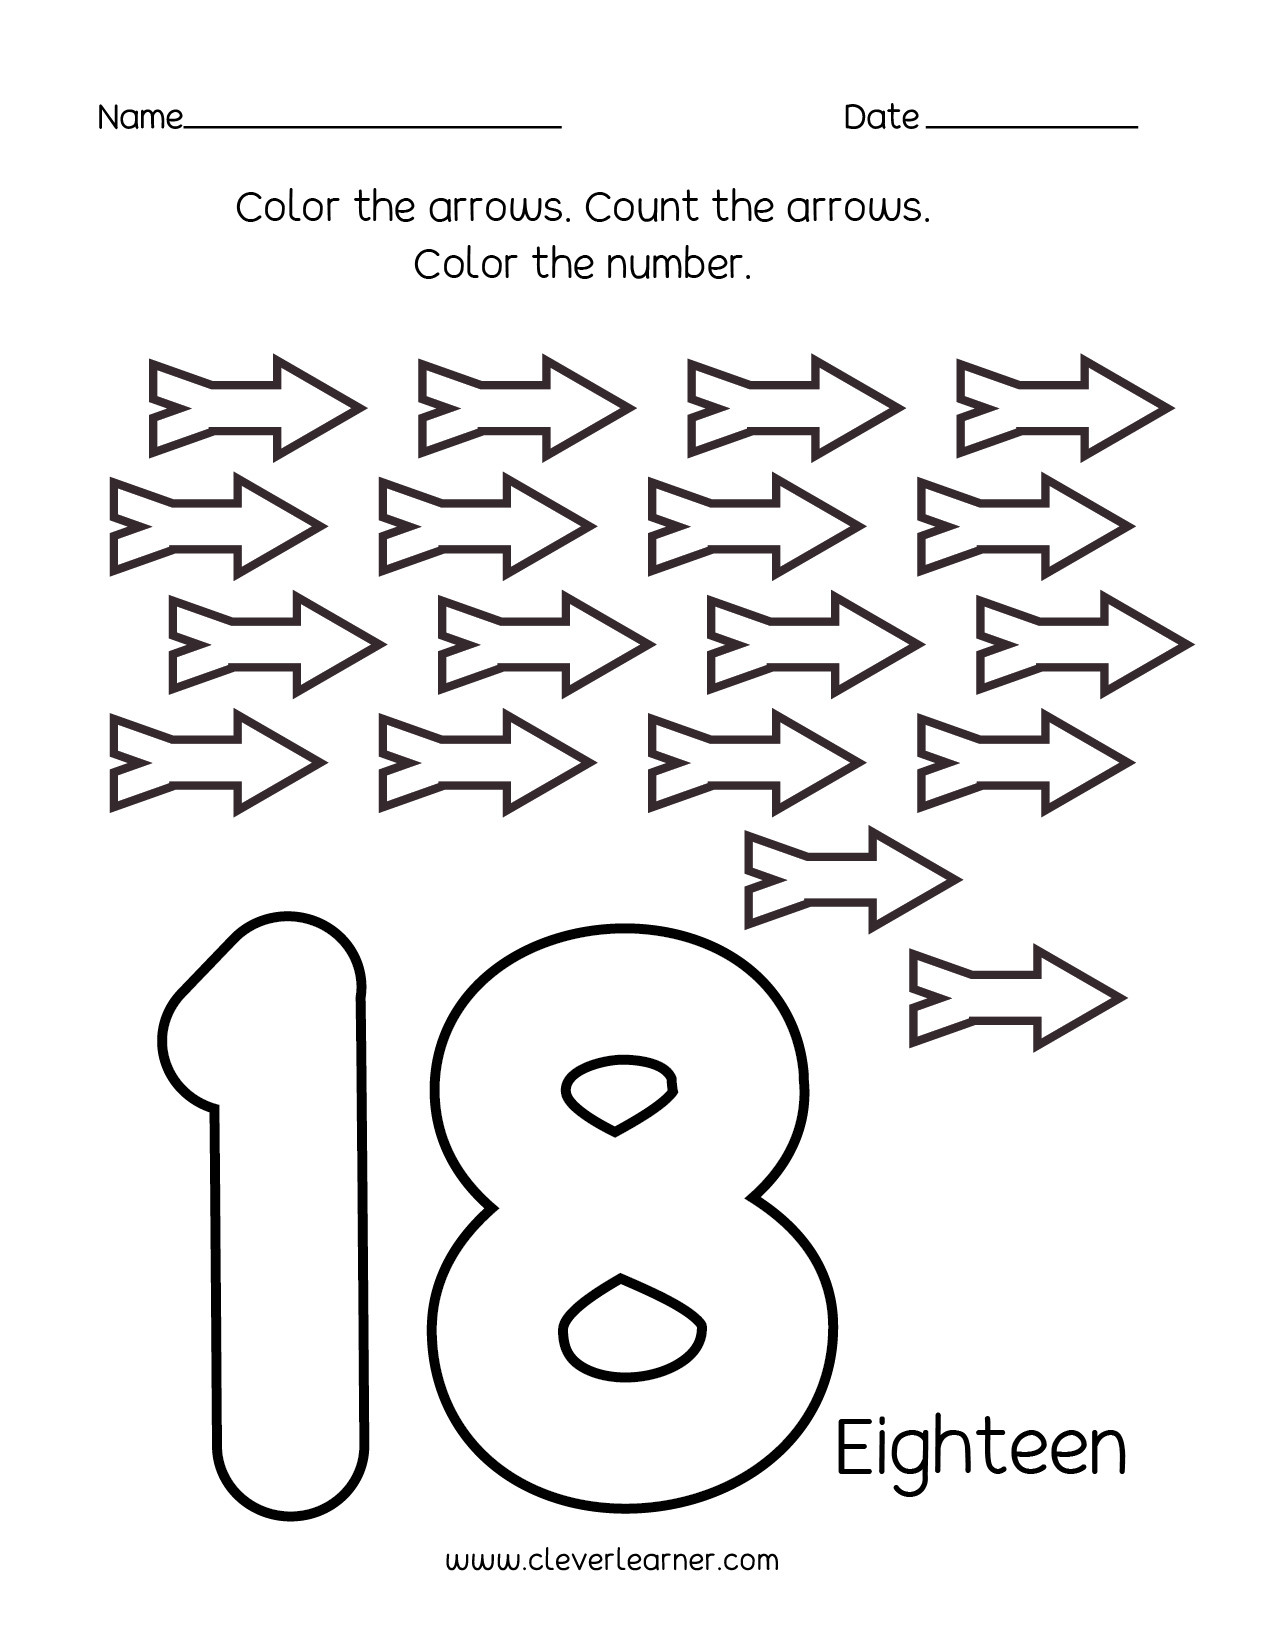 Counting Worksheets Preschool Number Writing Counting and Identification Printable